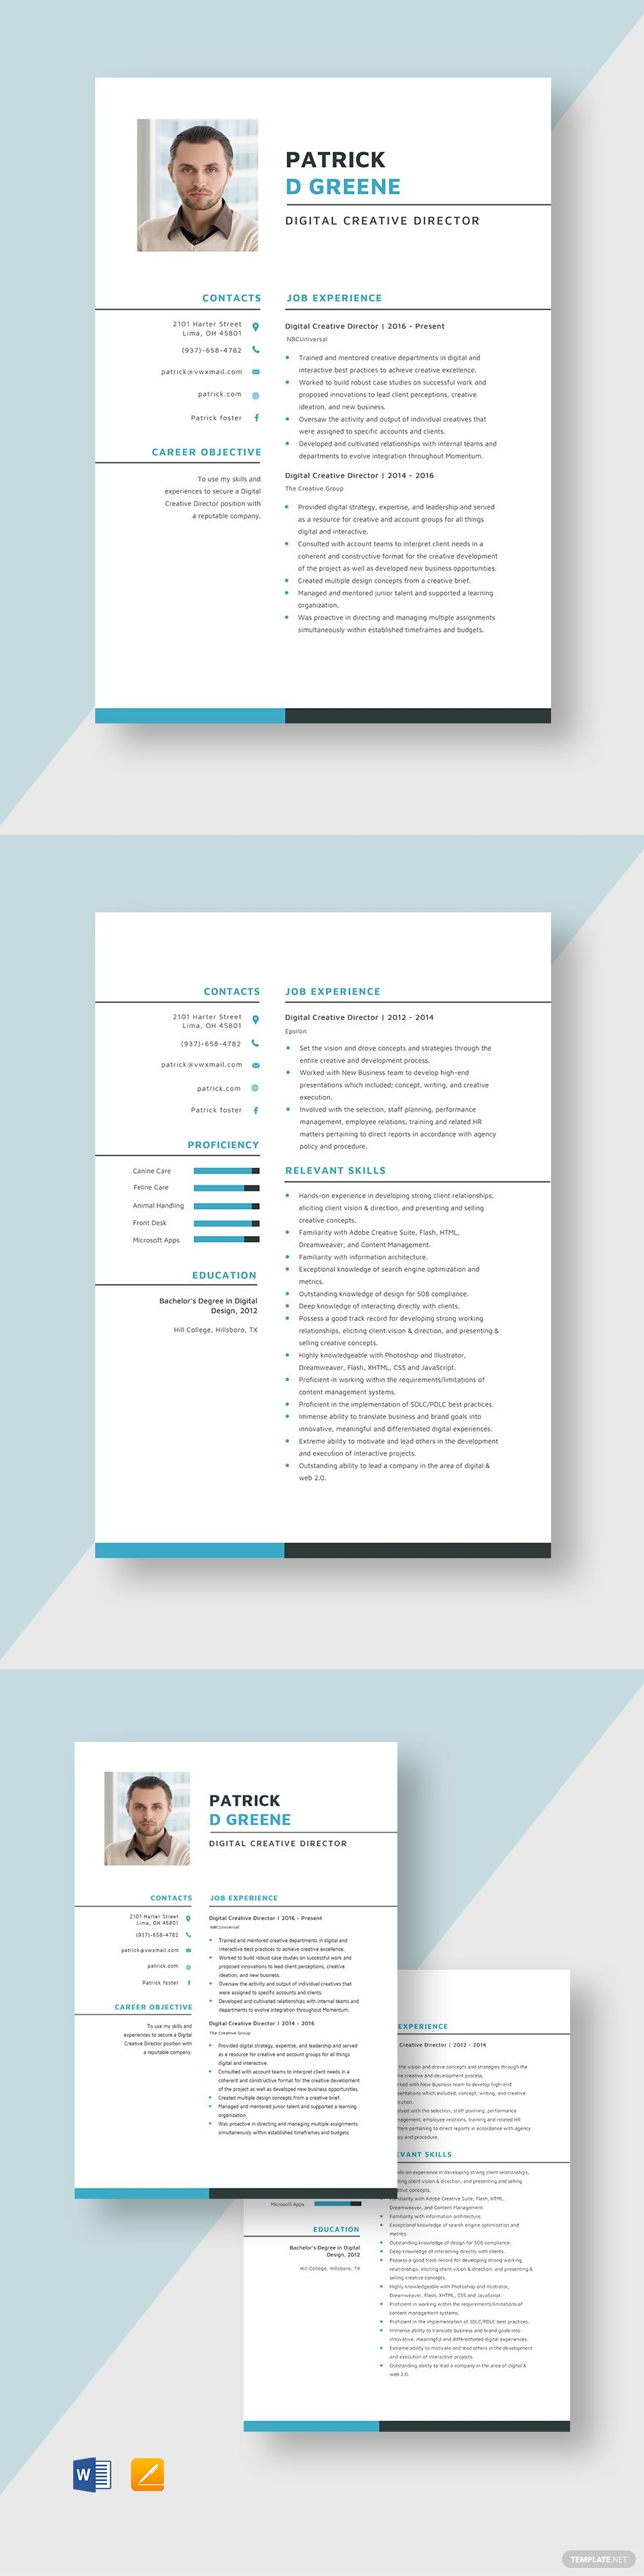 Digital Creative Director Resume Resume design template